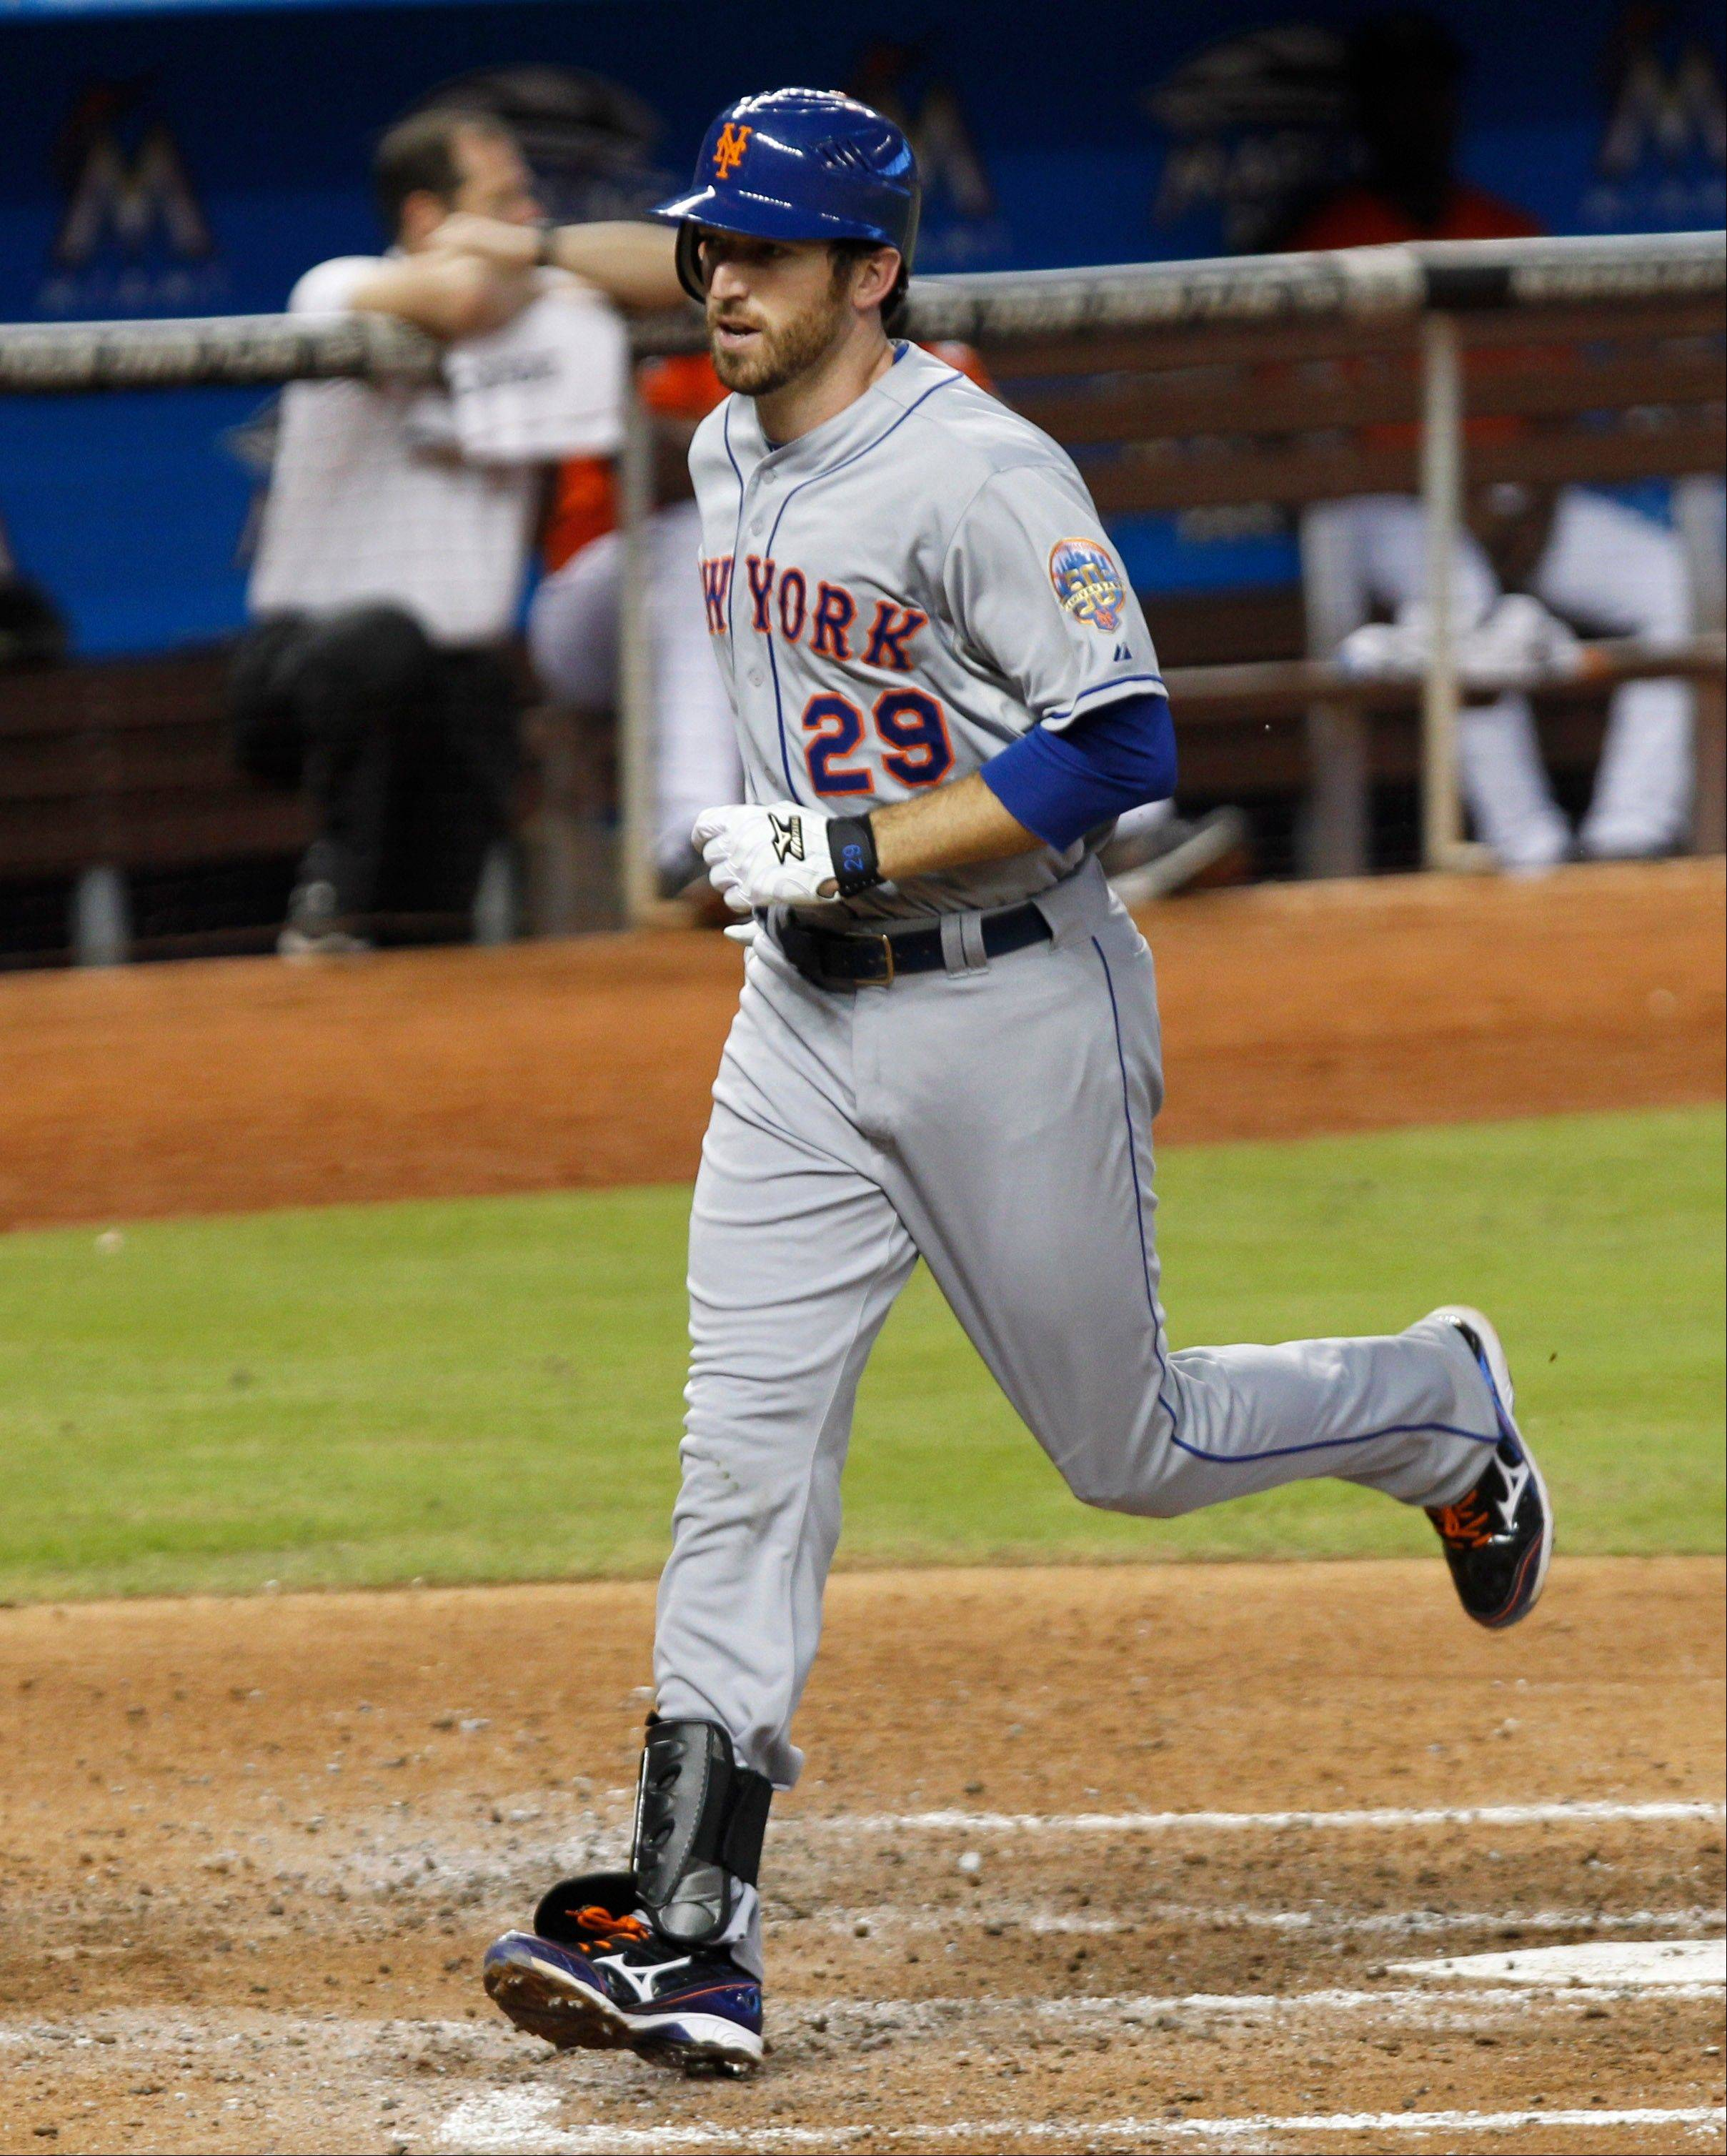 The Mets' Ike Davis crosses home plate after hitting a solo home run against the Marlins in the sixth inning Wednesday in Miami.